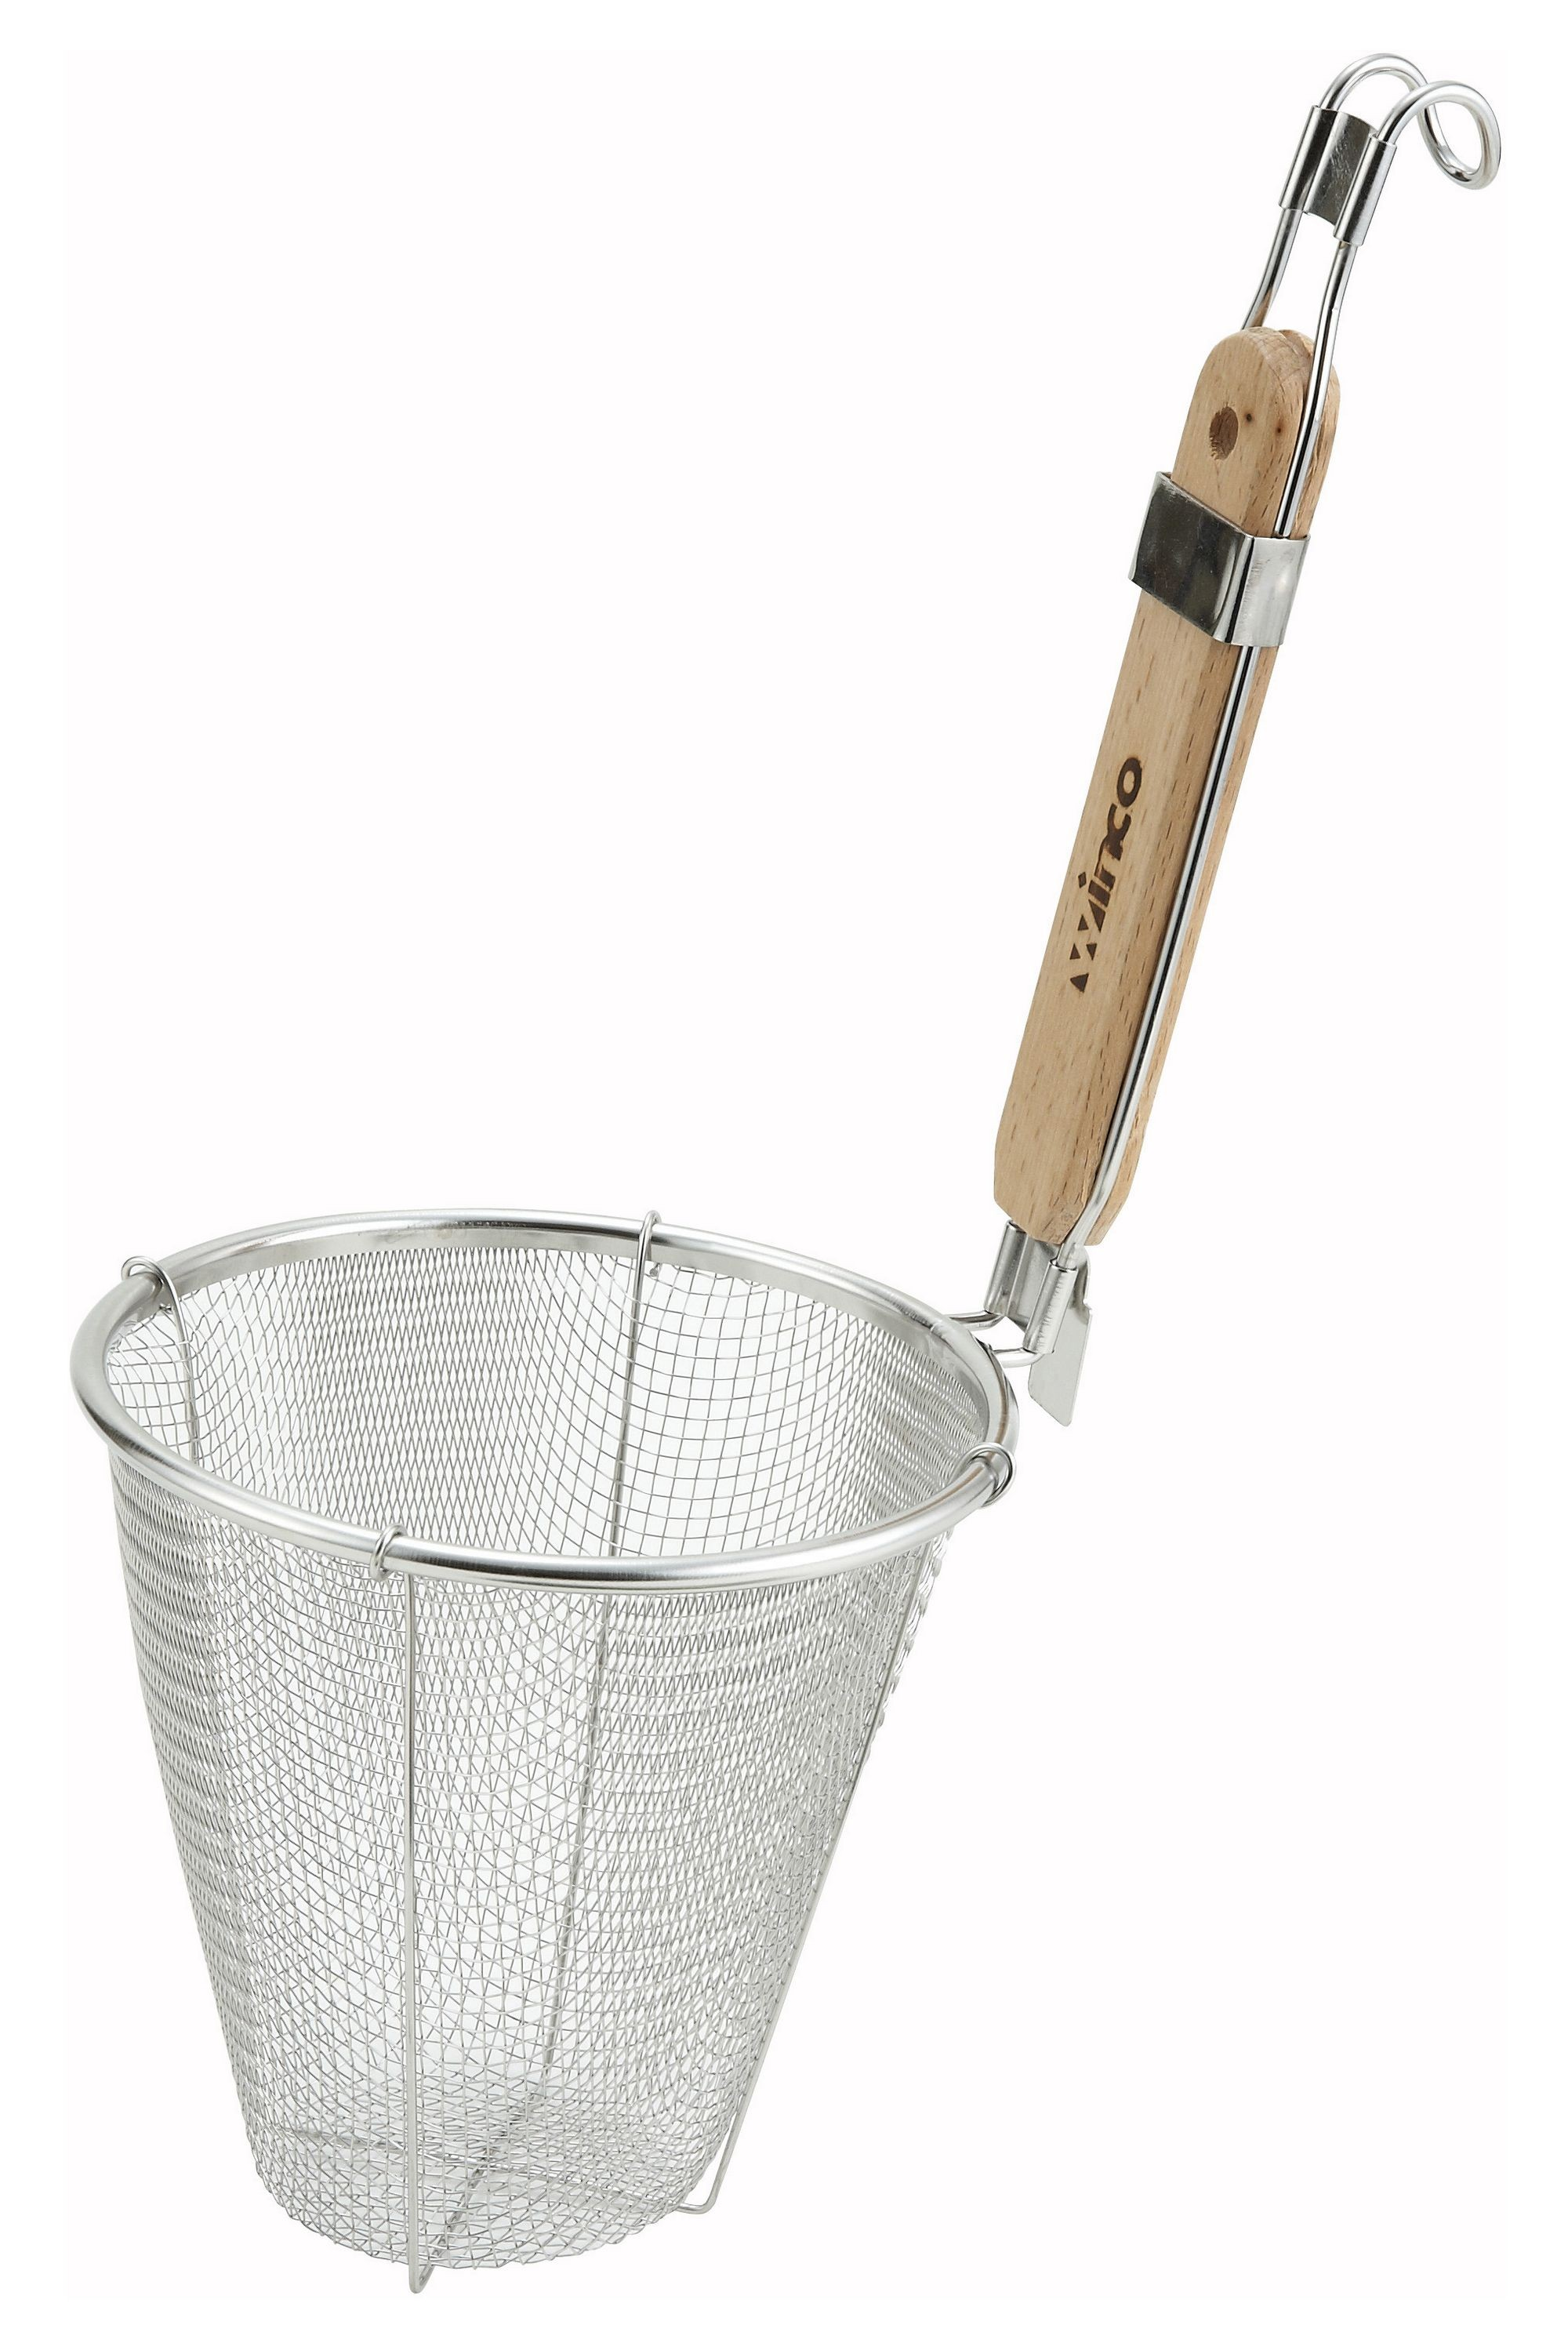 Stainless Steel Double Mesh Deep Bowl Strainer - 5-1/2 X 6-1/2